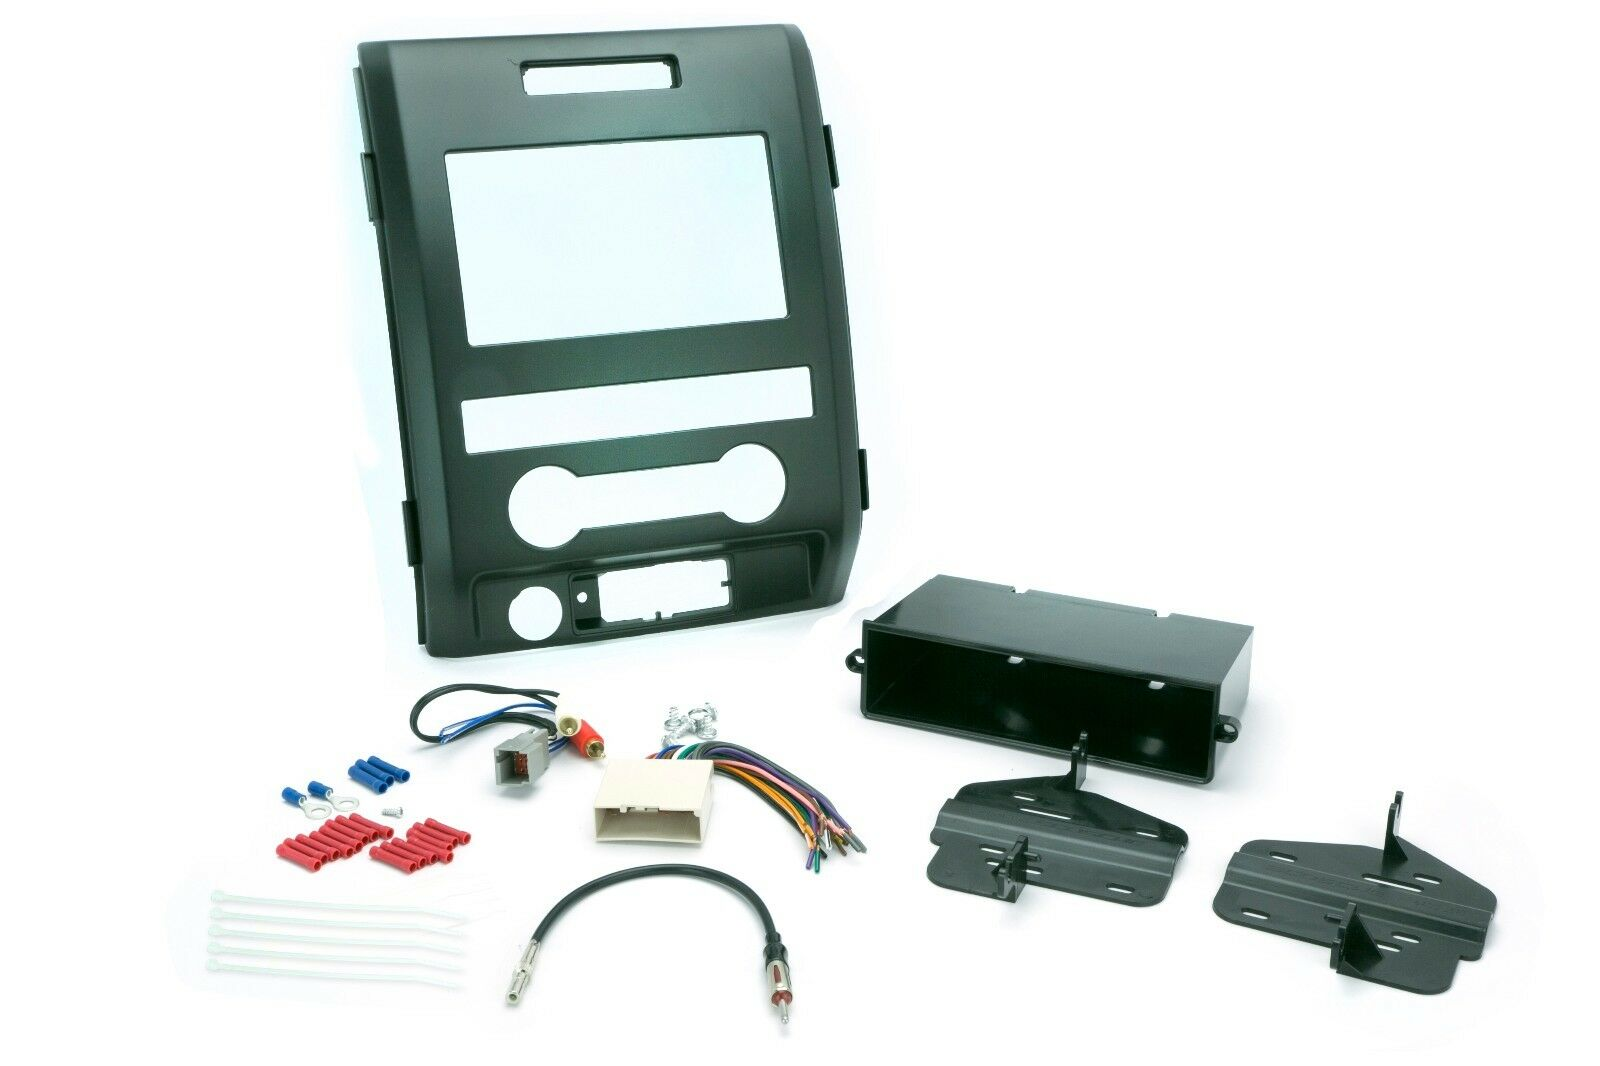 Ford Dash Kit For F 150 Single Din Radio Replace Install Wire Harness 1 Of 1only 2 Available See More